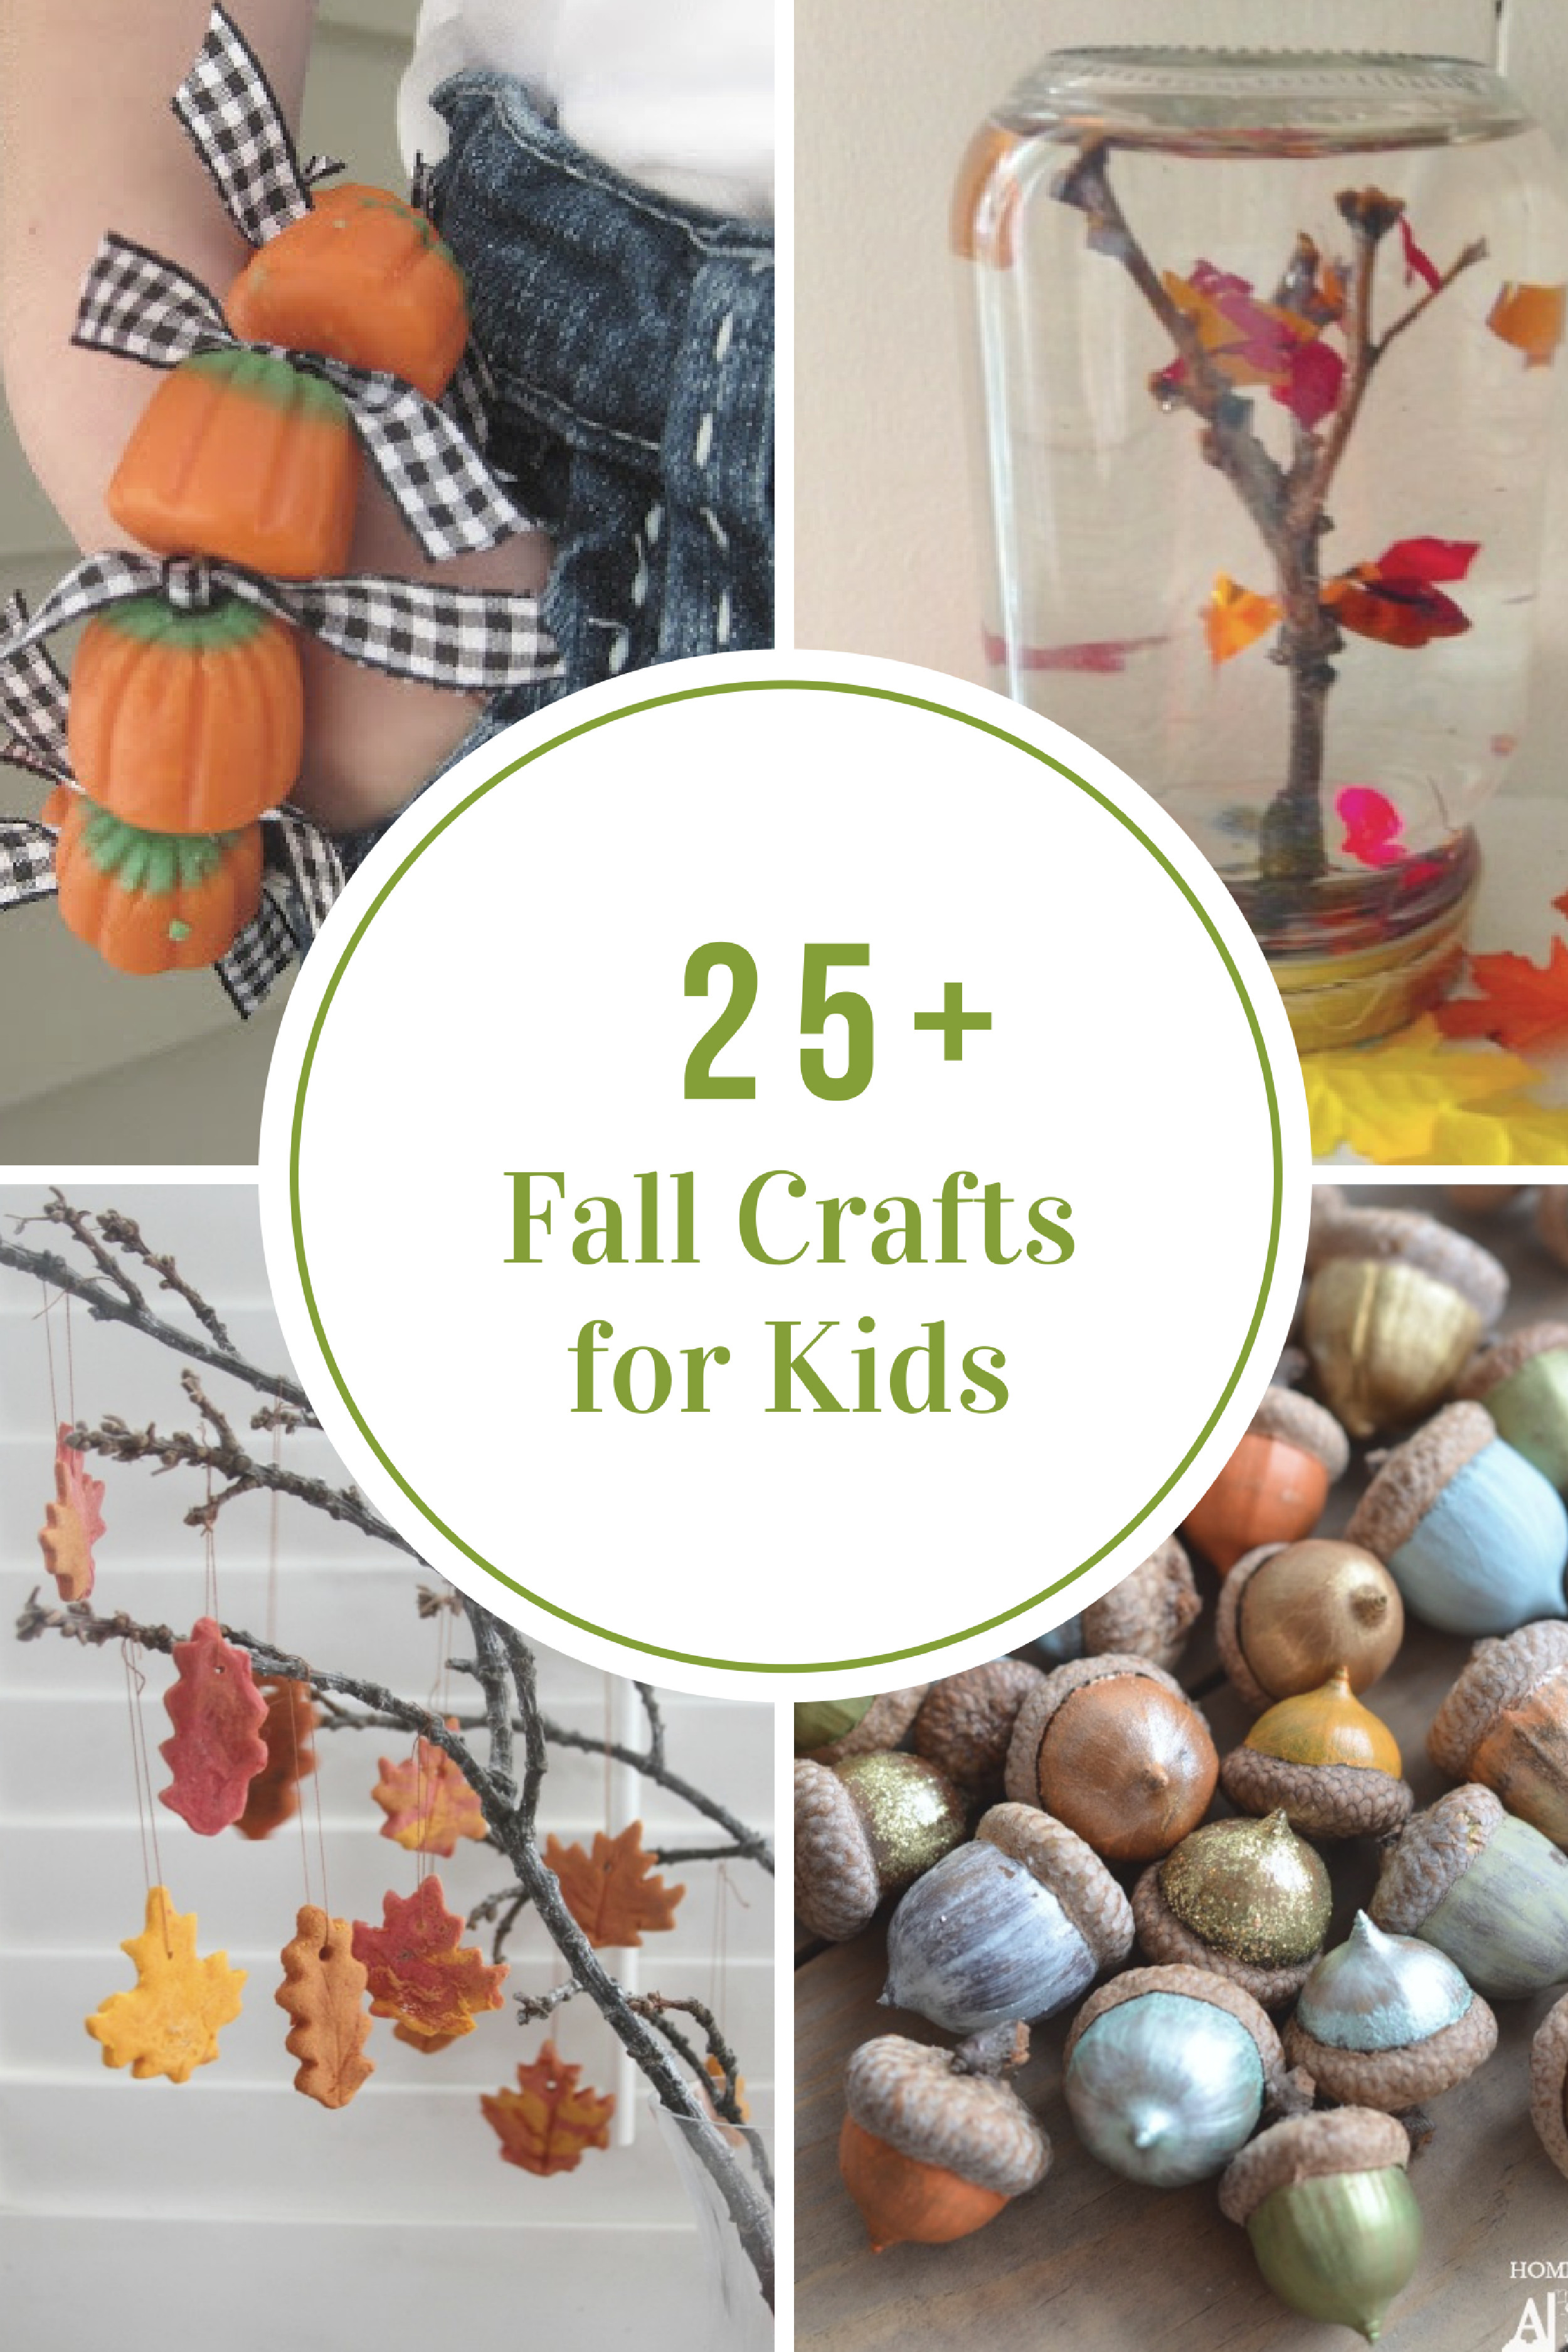 DIY Crafts For Kids  Fall Crafts for Kids The Idea Room